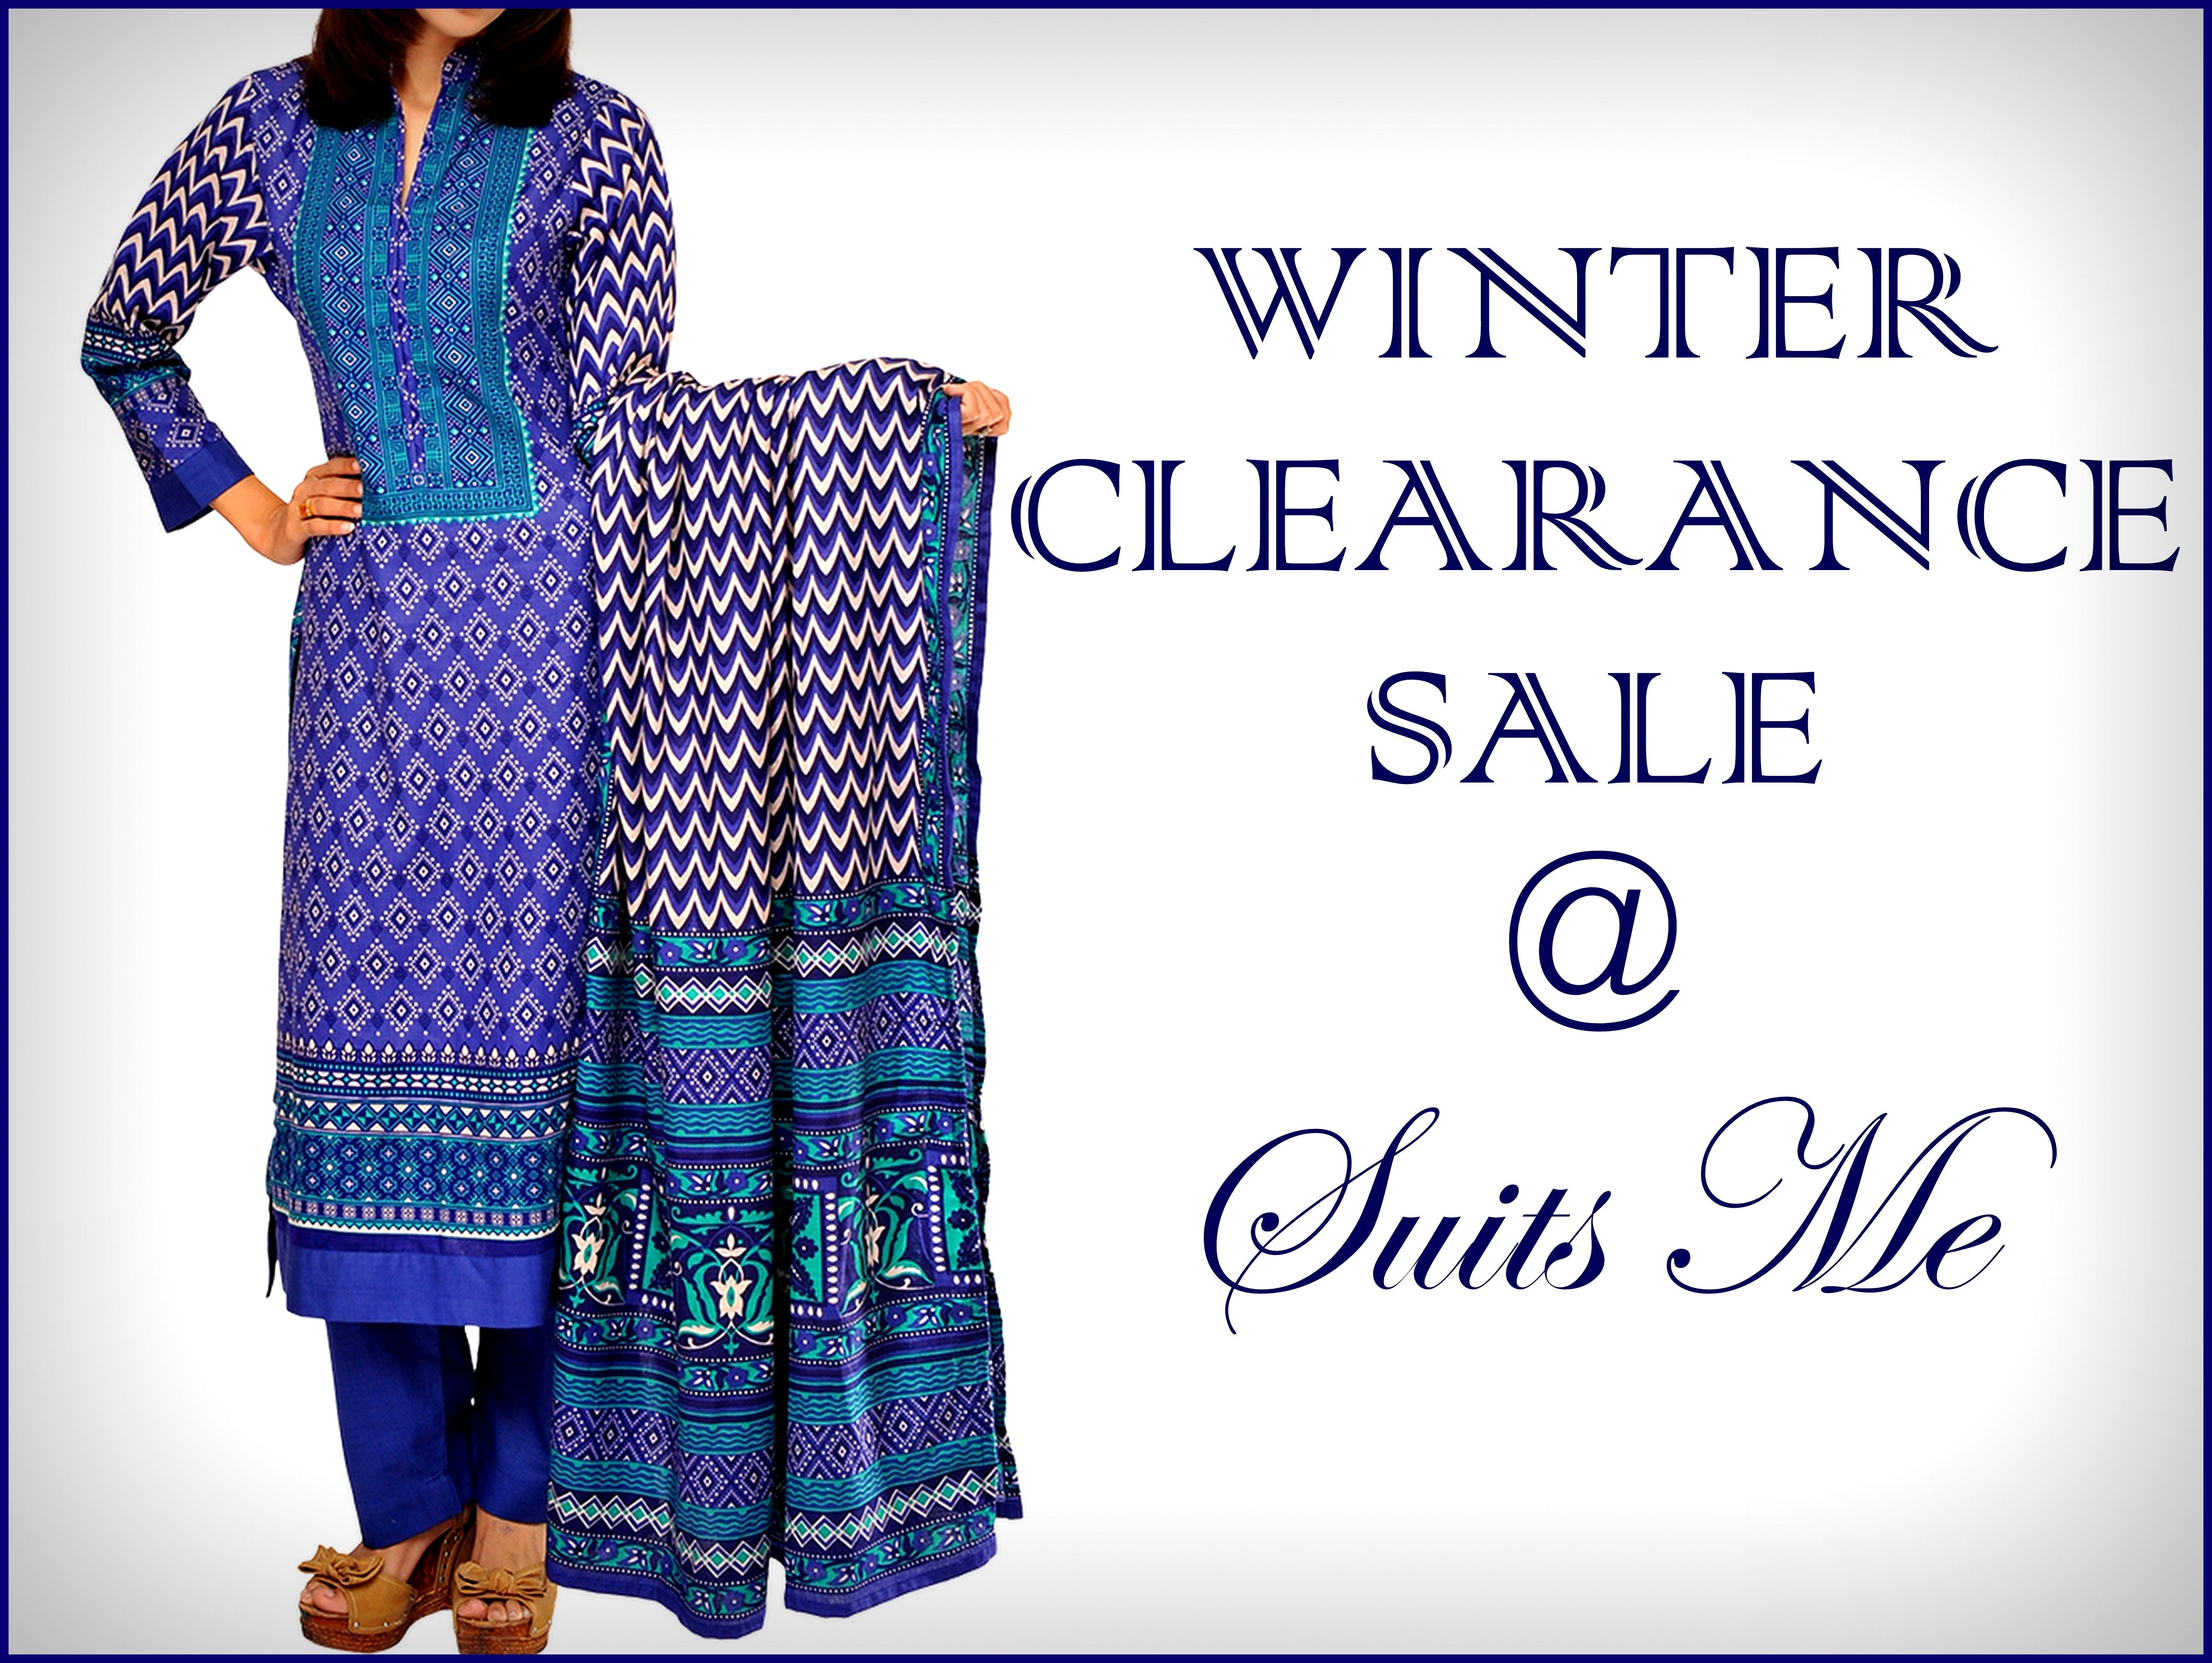 WINTER CLEARANCE SALE CONTINUES @ www.suitsmeonline.com